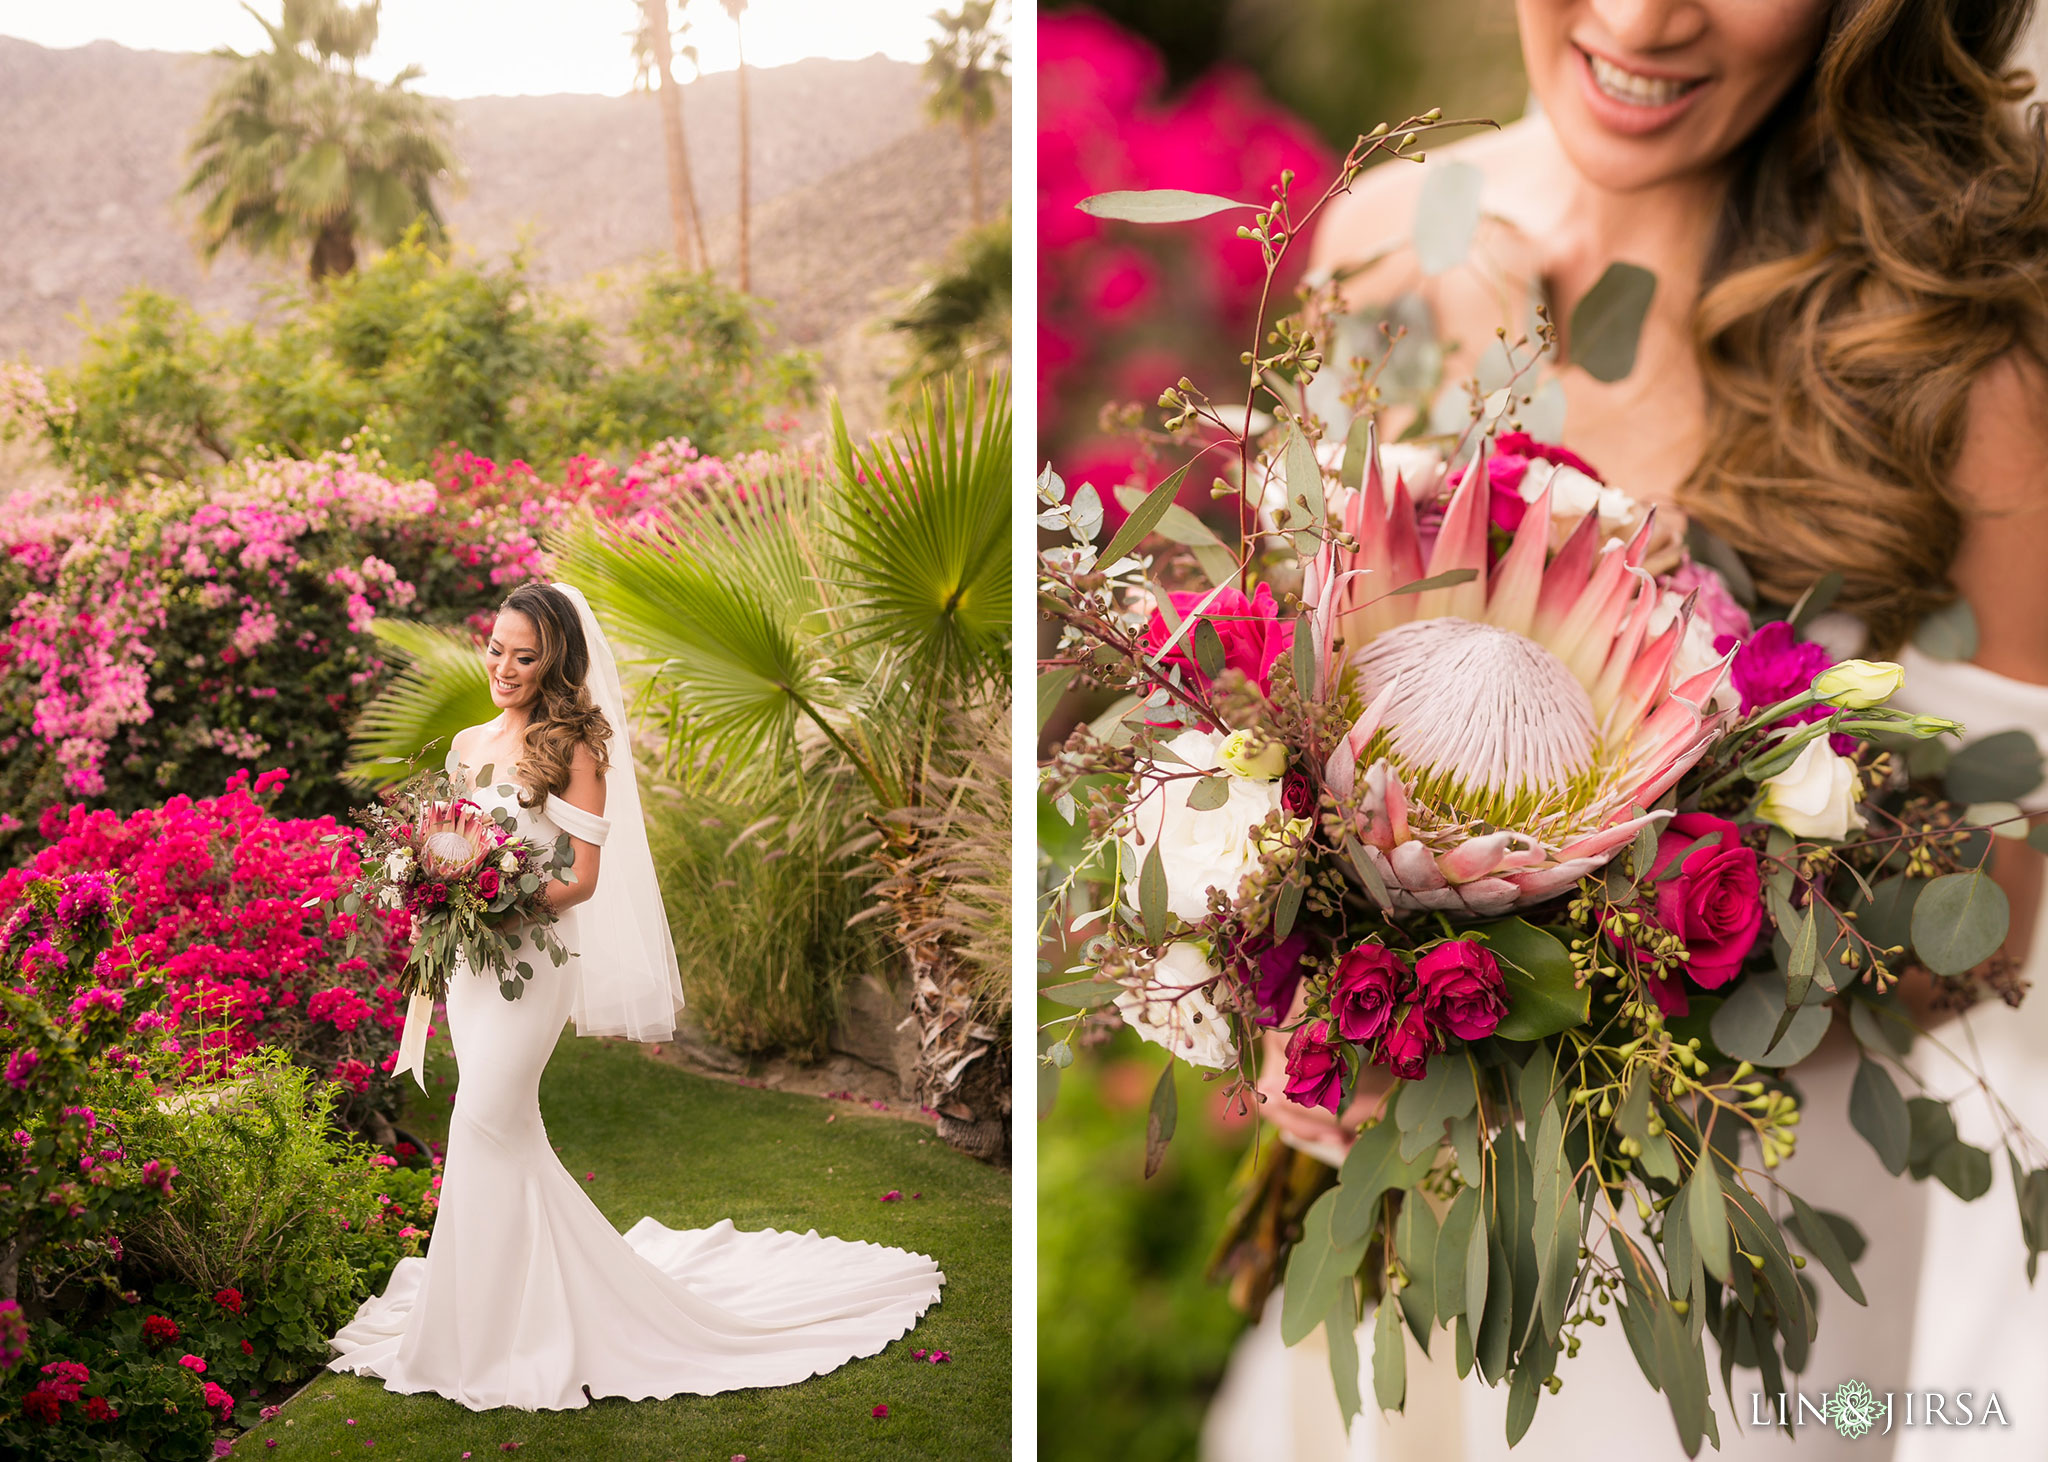 06 odonnell house palm springs bride wedding photography